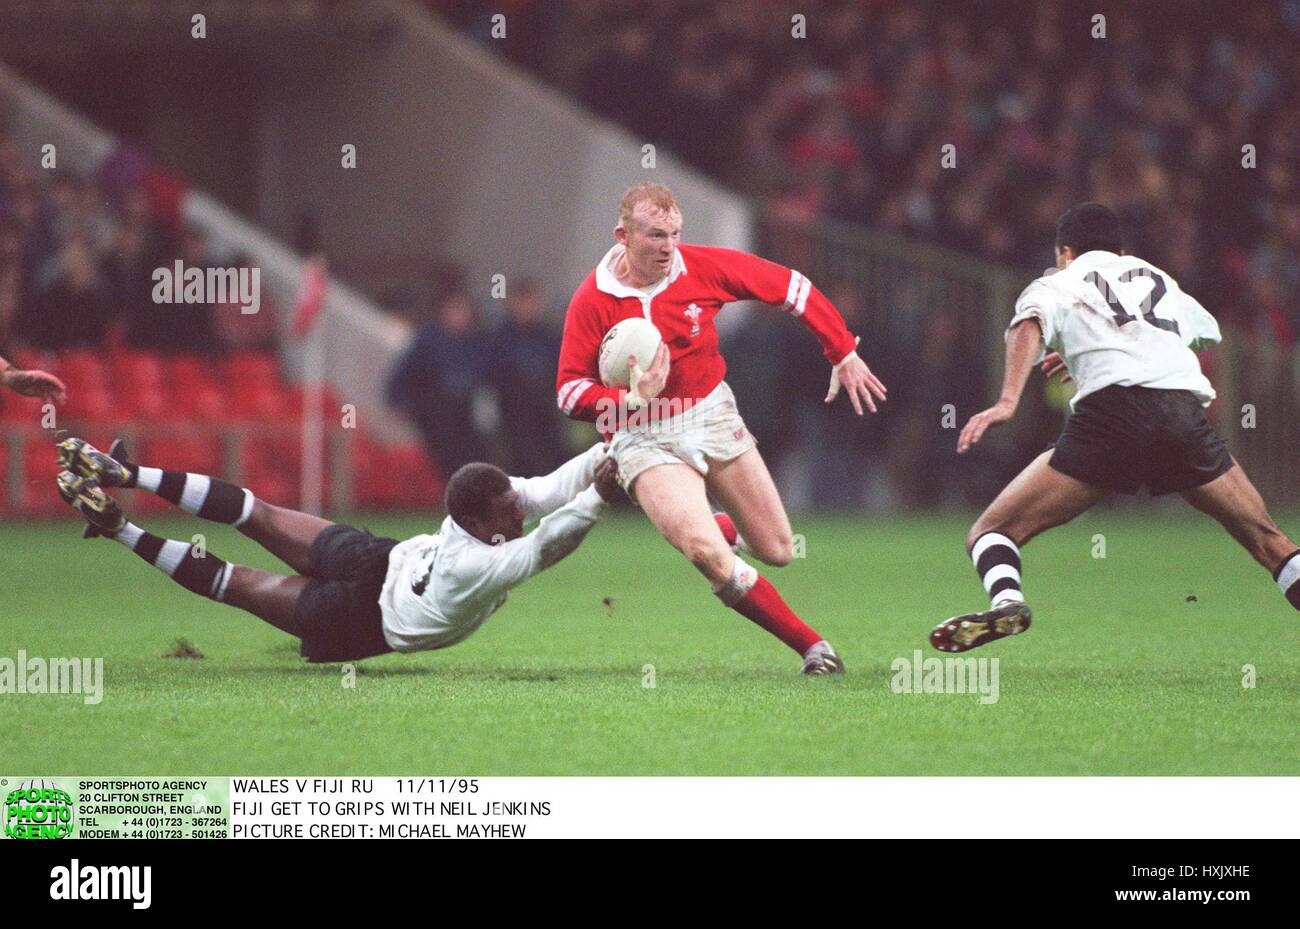 FIJI GET TO GRIPS WITH NEIL JENKINS. 11 November 1995 - Stock Image